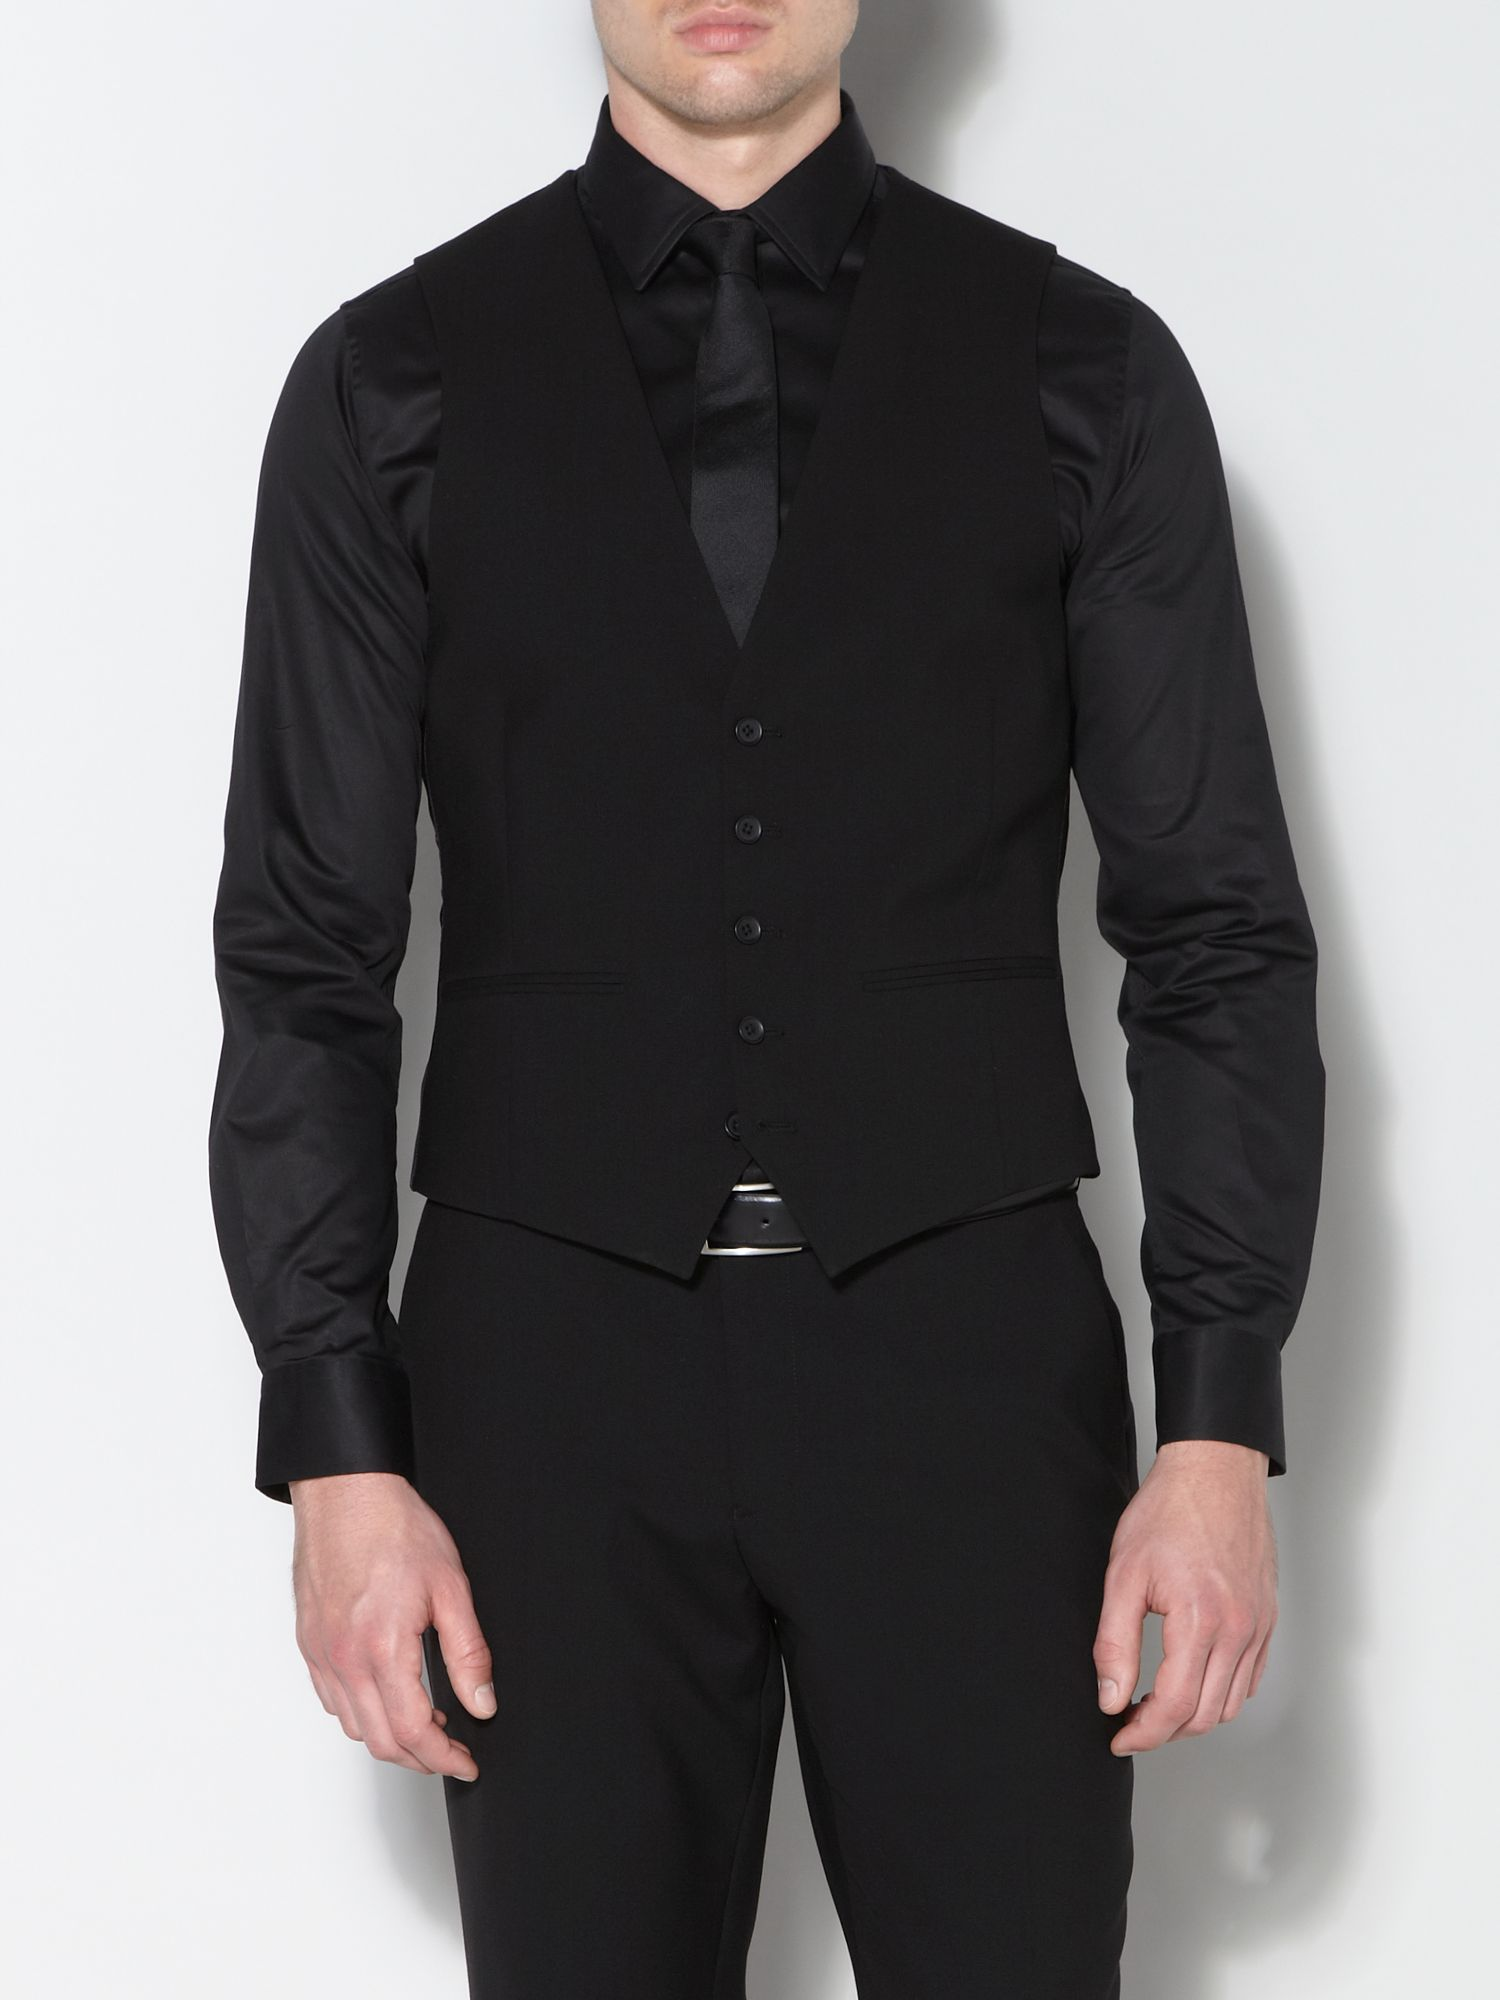 Ultra black three piece suit waistcoat